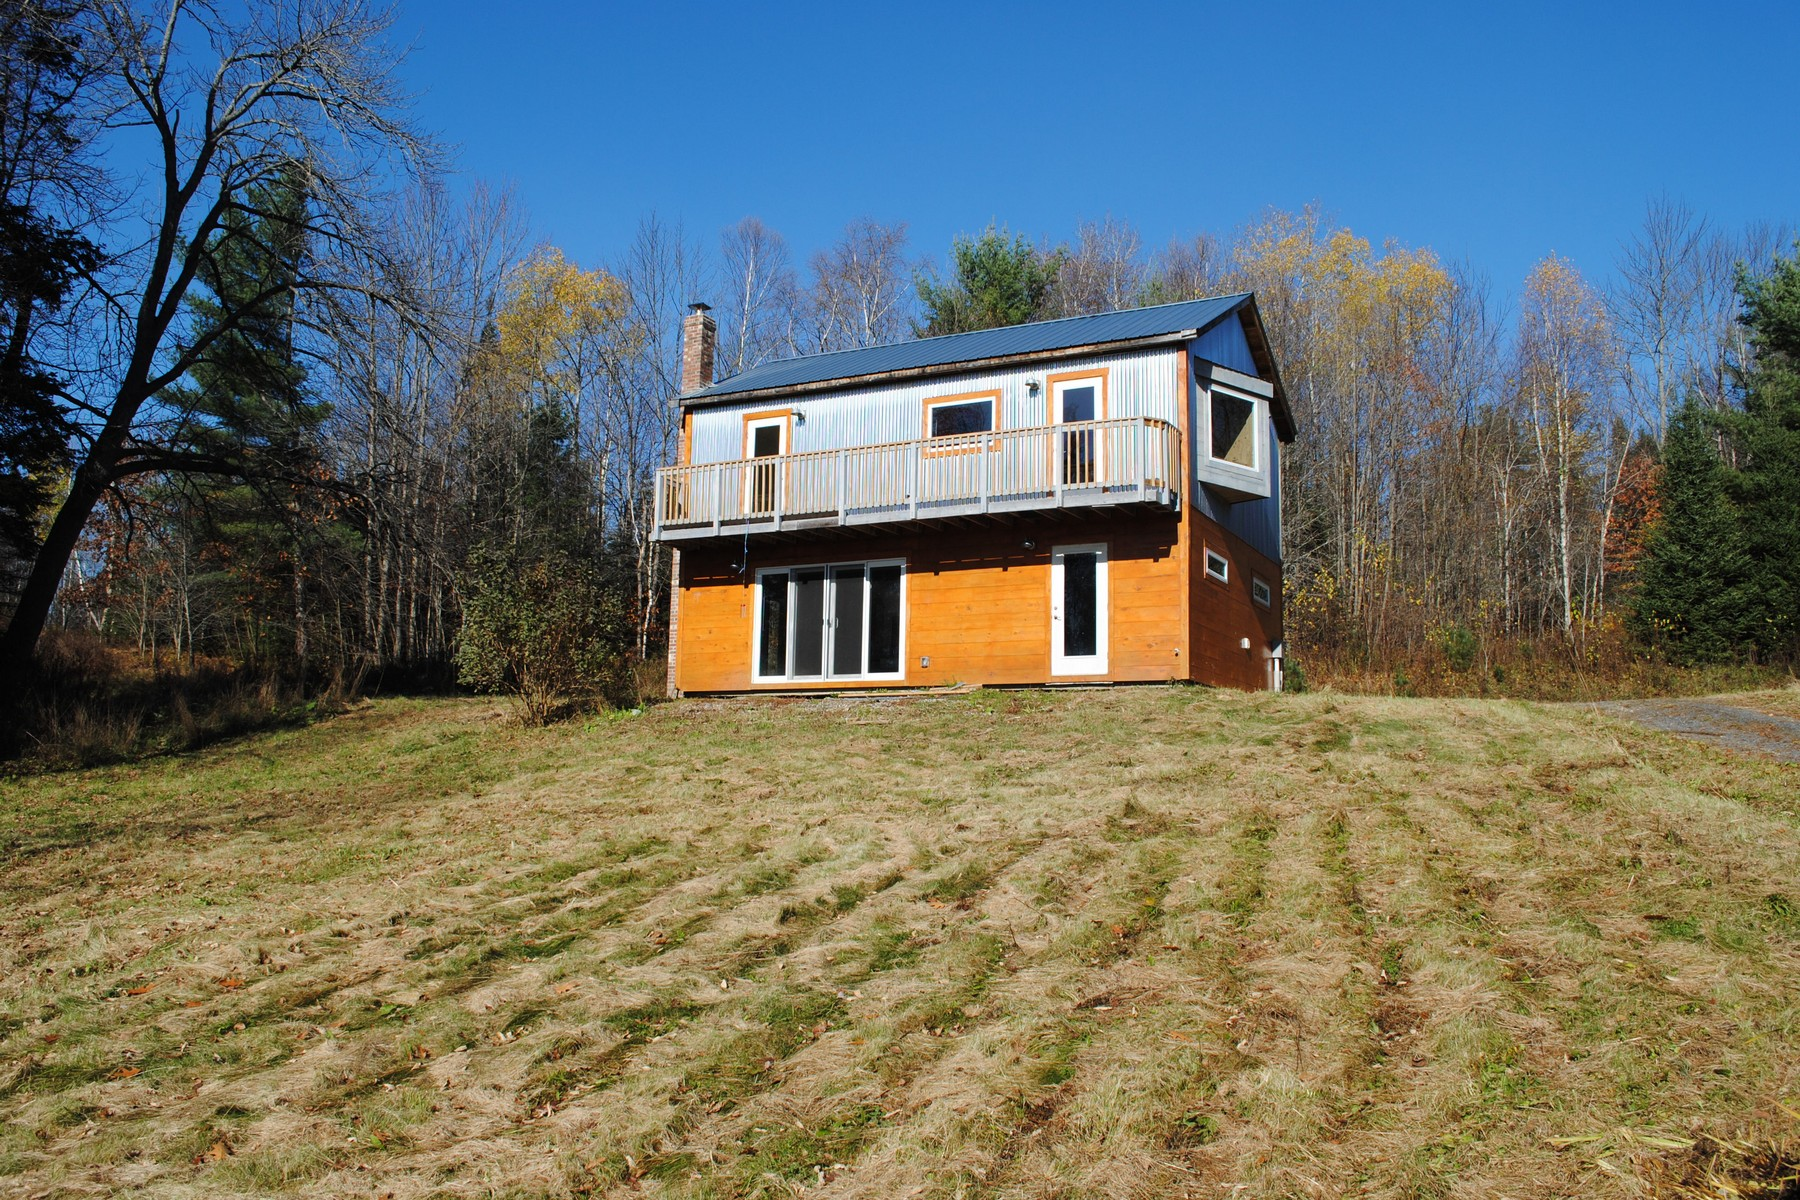 149 Burroughs Rd, Concord, VT 05824